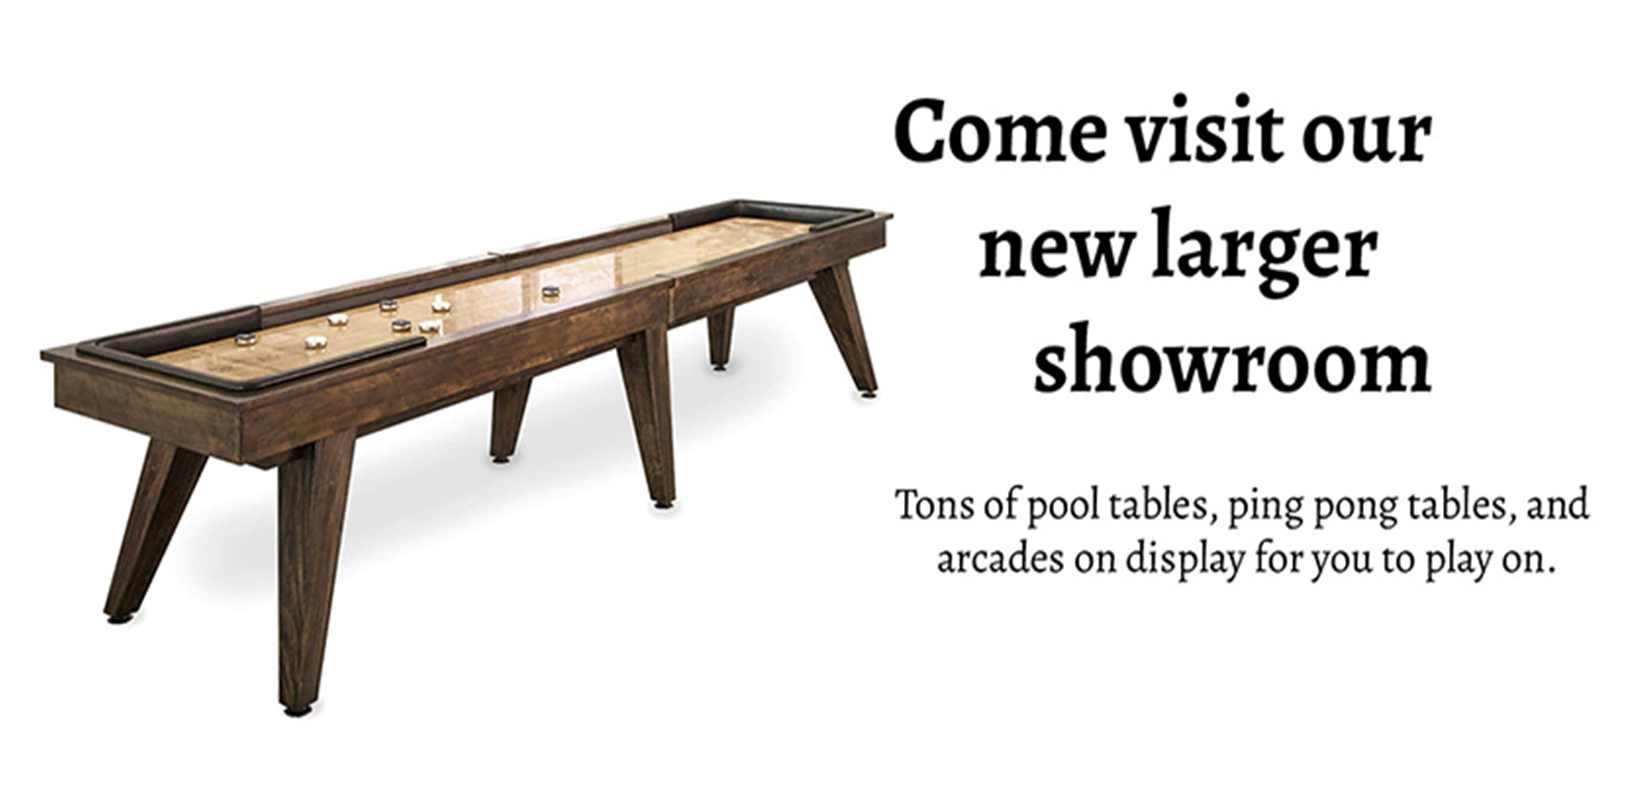 Collections of Pool tables, ping pong tables & arcades